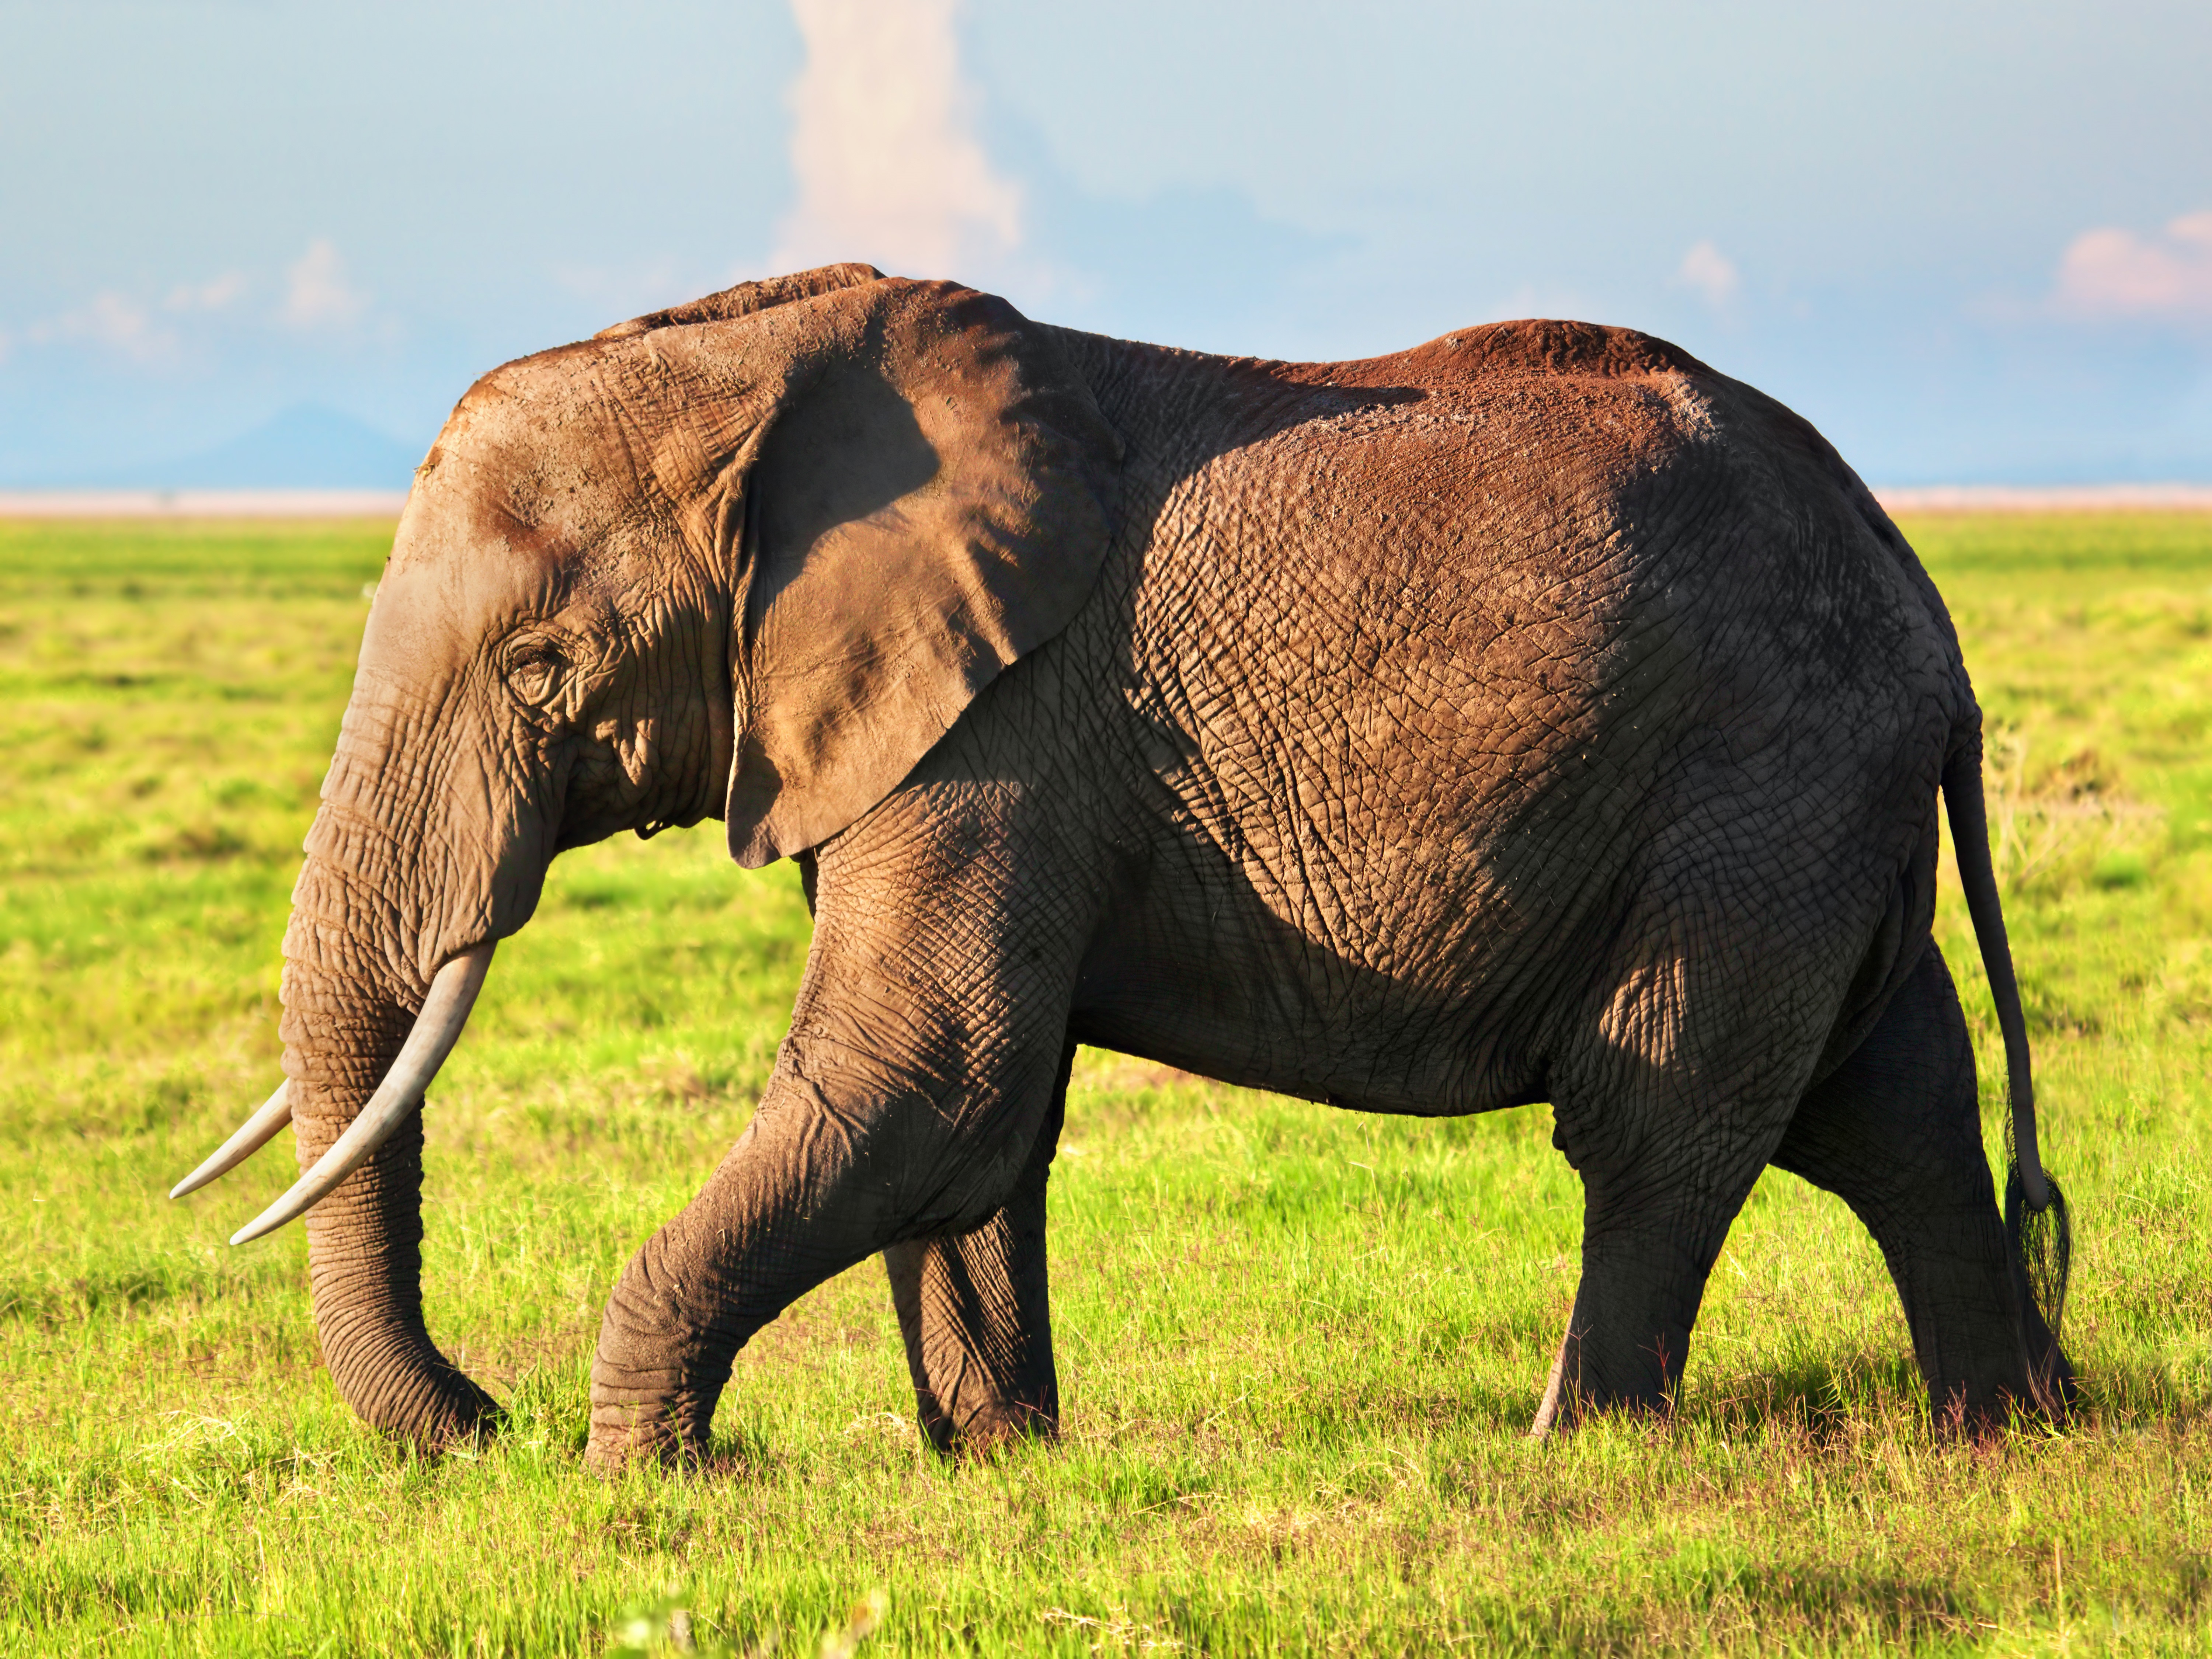 Evolution of the Tuskless Elephant